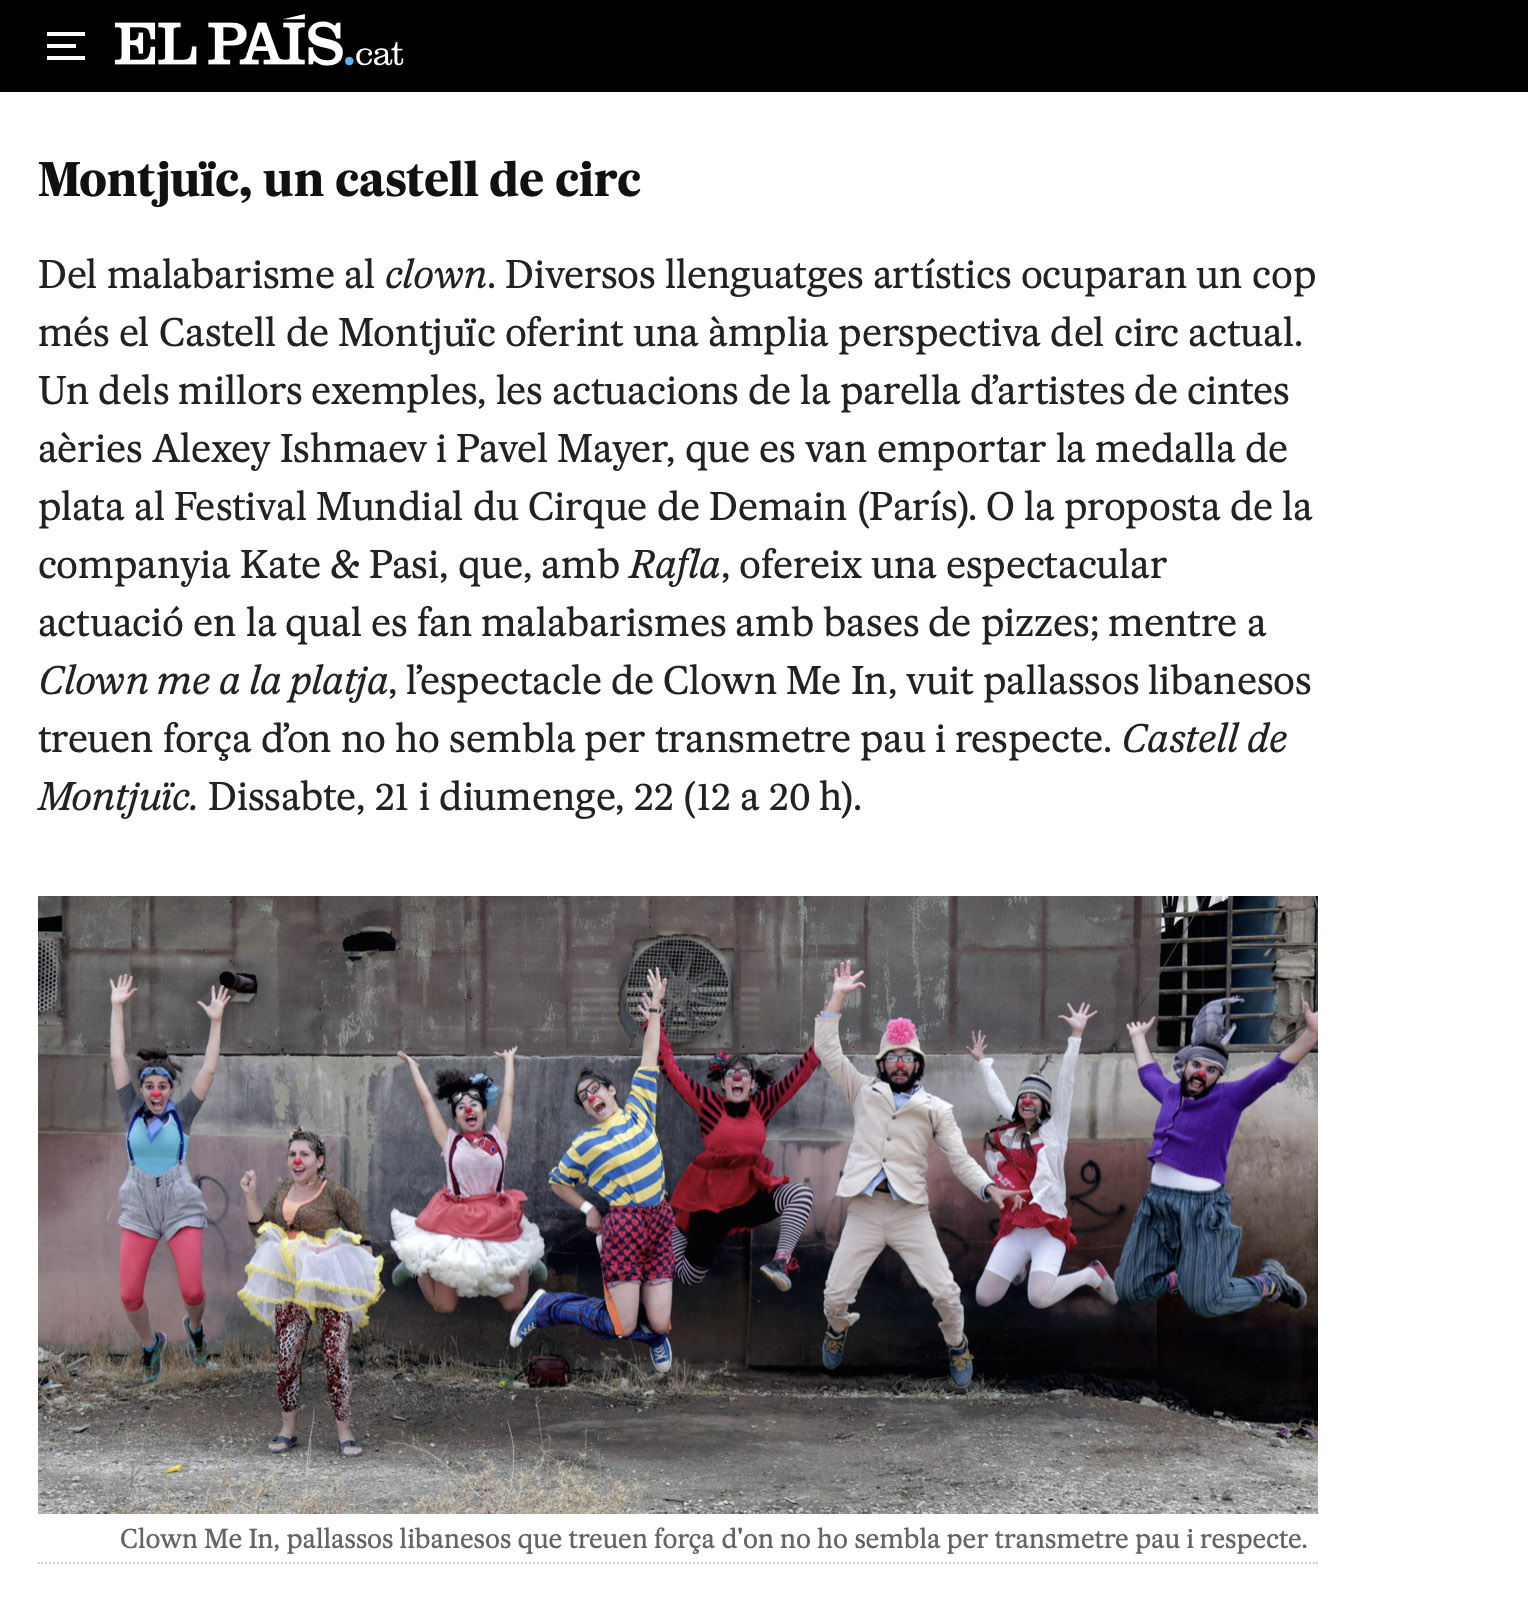 Clown Me In El Pais Cat Montjuic.jpg